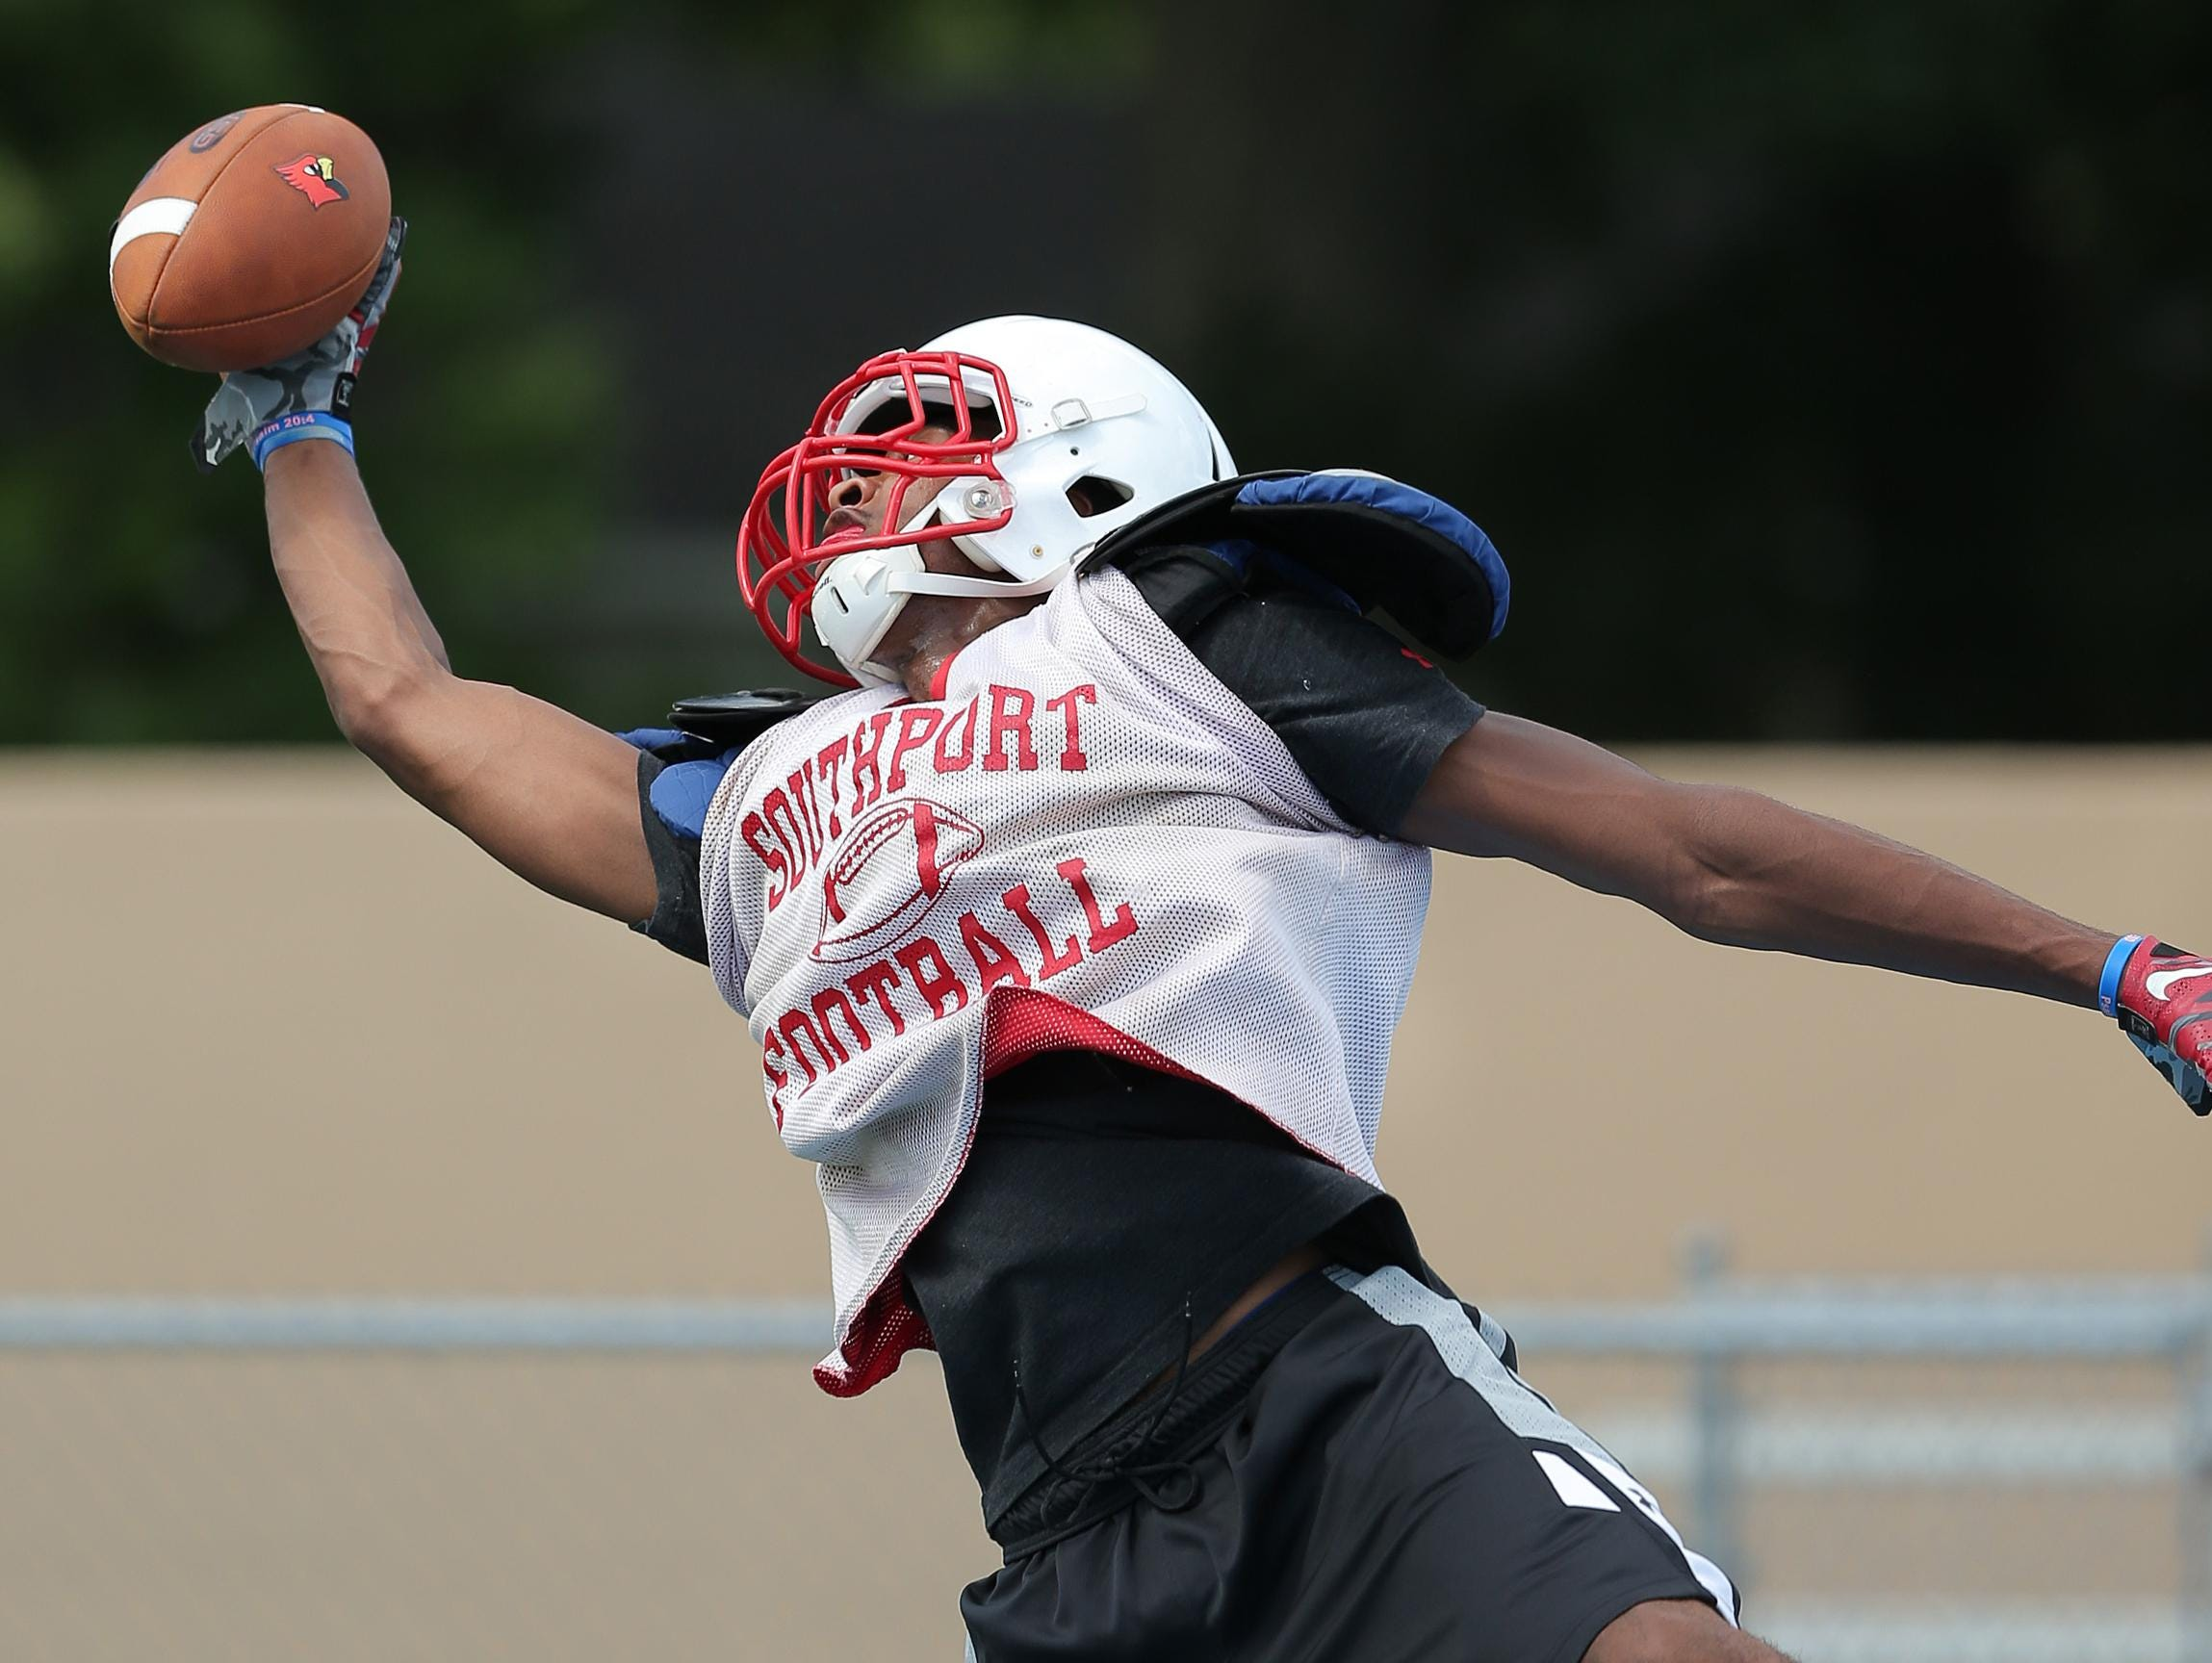 Southport basketball star Paul Scruggs makes a one-handed catch from quarterback Luke Johnston during practice, Aug. 12, 2015. Scruggs is playing football this season as a wide receiver for the first time.